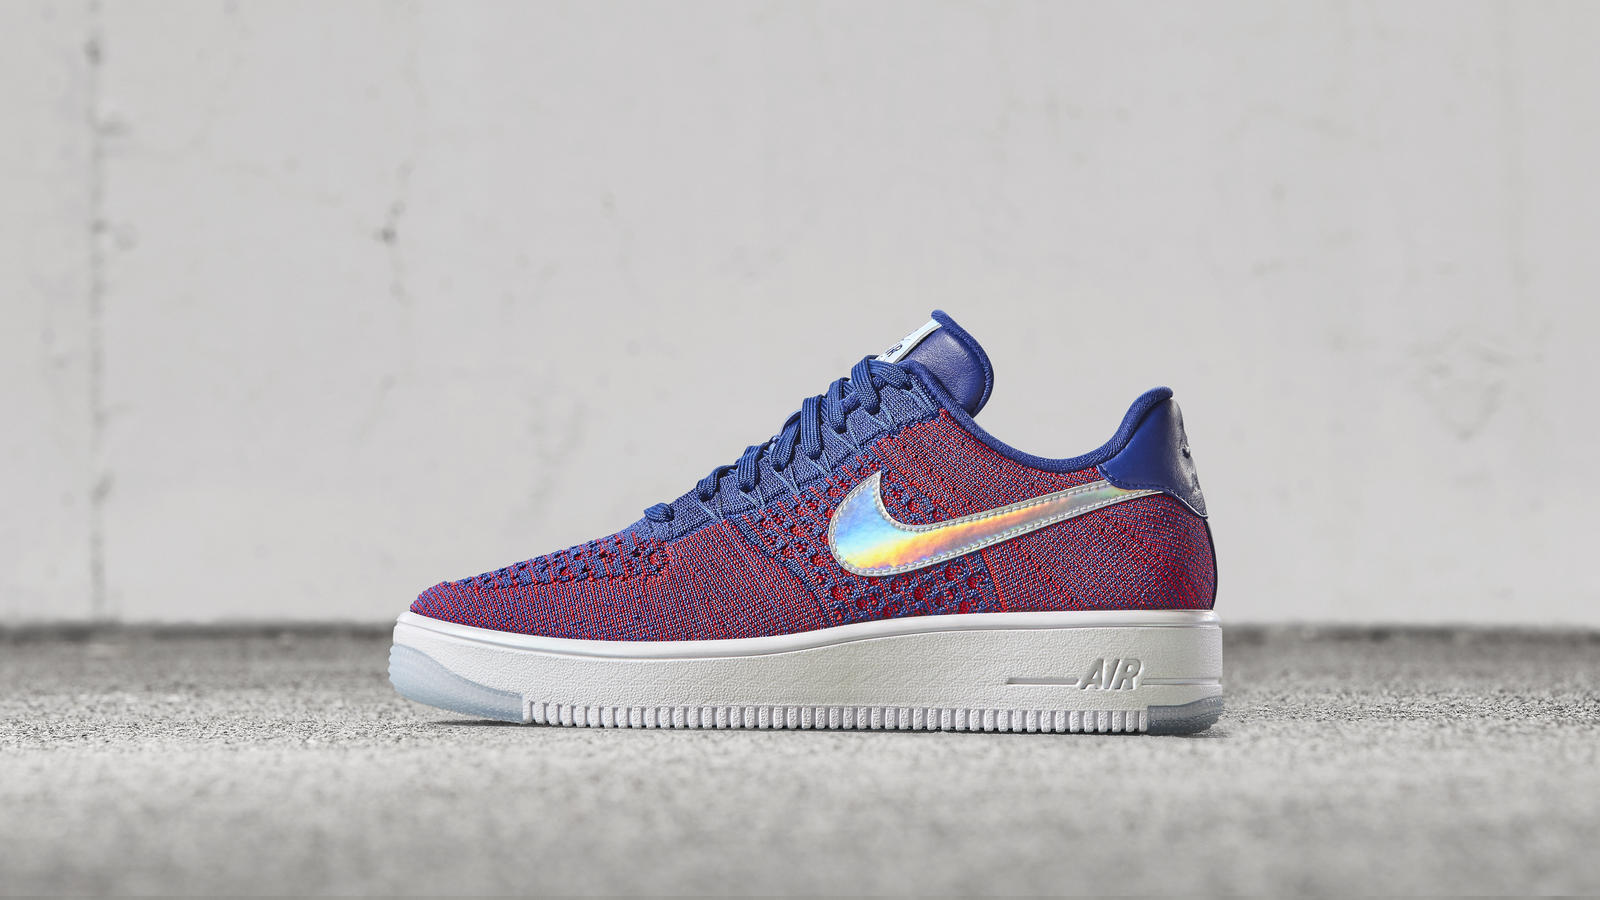 new style 11683 8132c The Nike Air Force 1 Ultra Flyknit Low Gets a  USA  Colorway-1